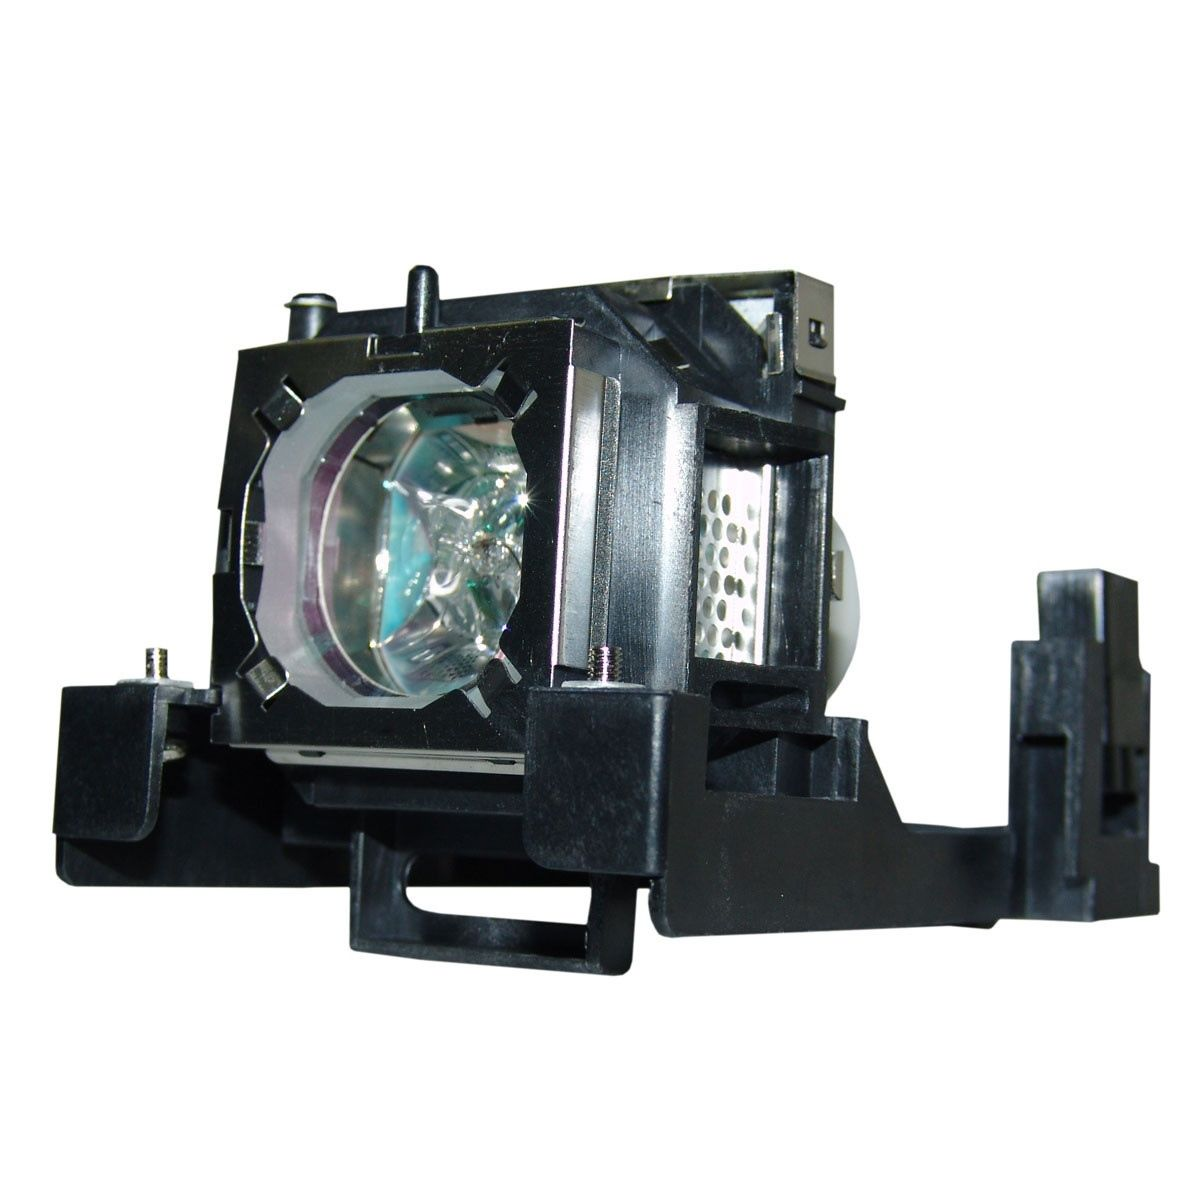 projector Lamp Bulb ET-LAT100 ETLAT100 LAT100 for Panasonic PT-TW230 PT-TW231R PT-TW230EA PT-TW231REA with housing et lab50 for panasonic pt lb50 pt lb50su pt lb50u pt lb50e pt lb50nte pt lb51 pt lb51e pt lb51u projector lamp bulb with housing